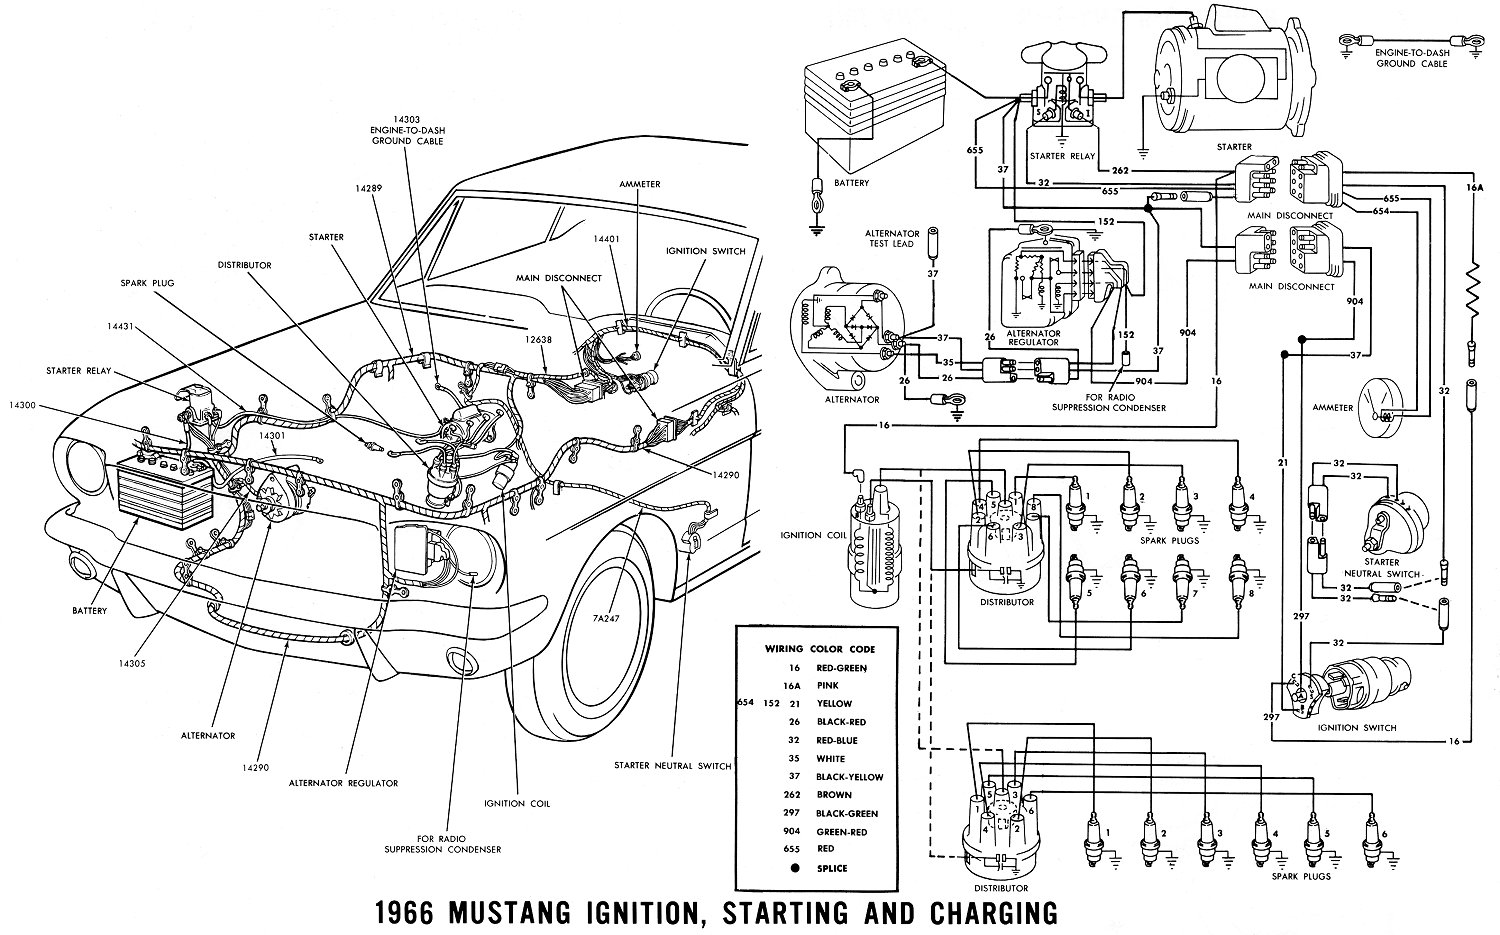 1973 Mustang Wiring Harness Data Diagram 73 Corvette 71 Change Your Idea With 2002 Gt